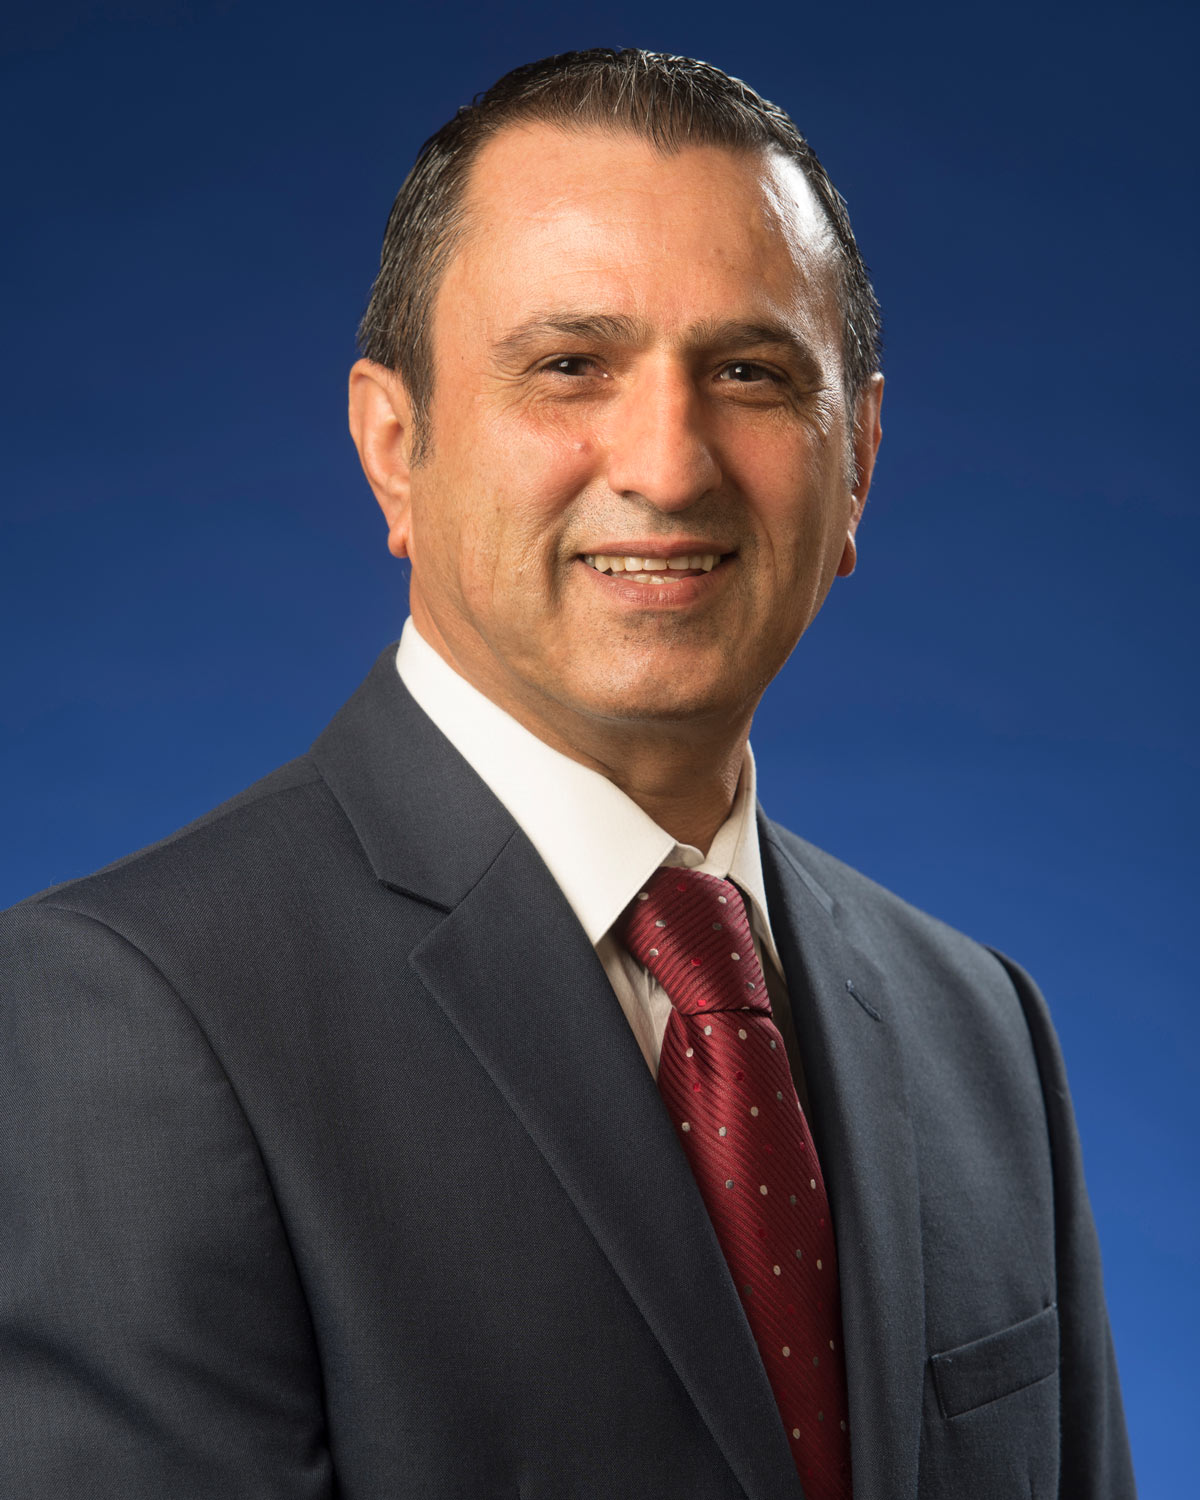 Professional headshot photograph of Ali Moradi, MD, MPH, DR.PH